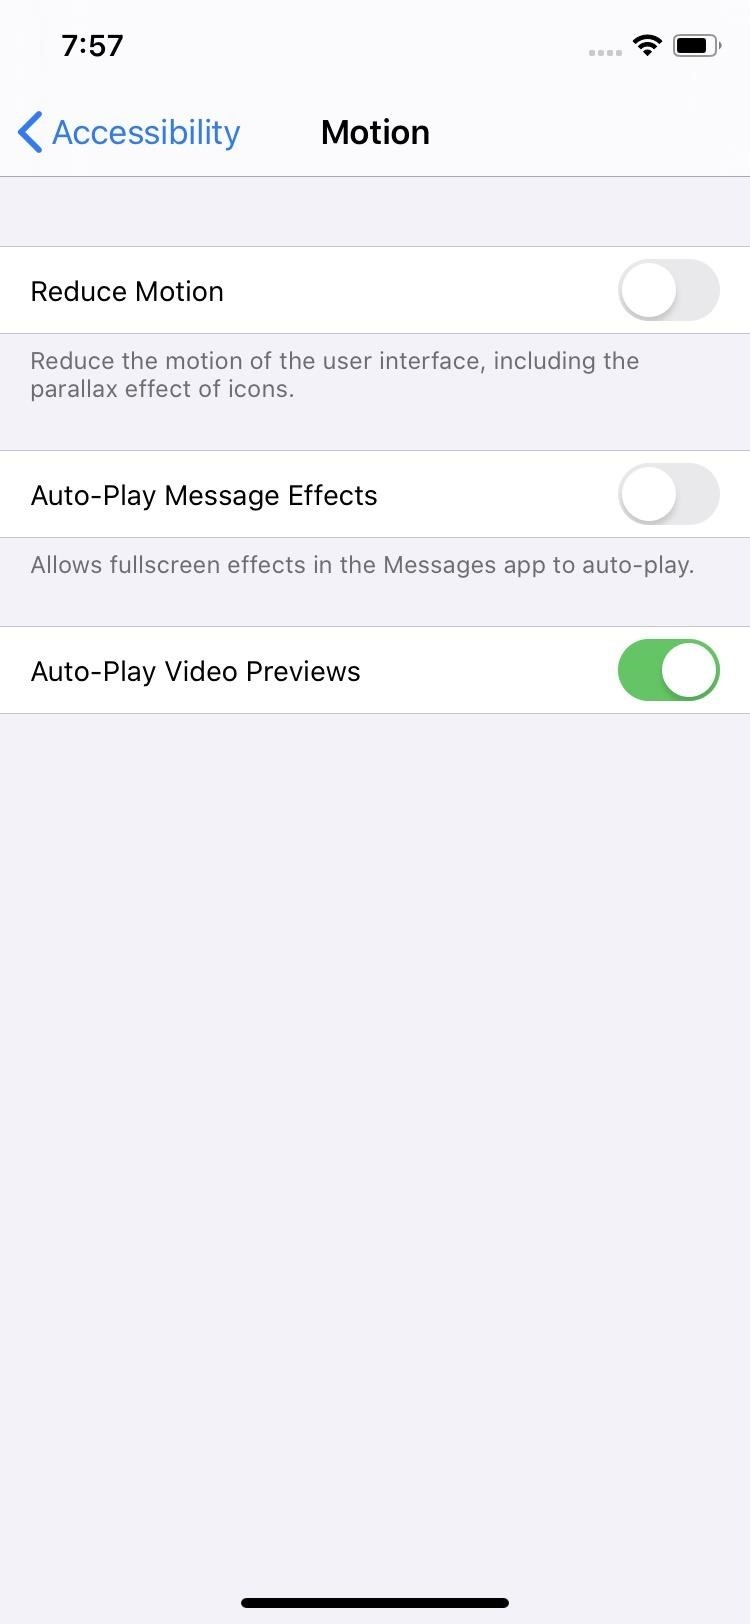 How to Disable Message Effects from Auto-Playing on Your iPhone